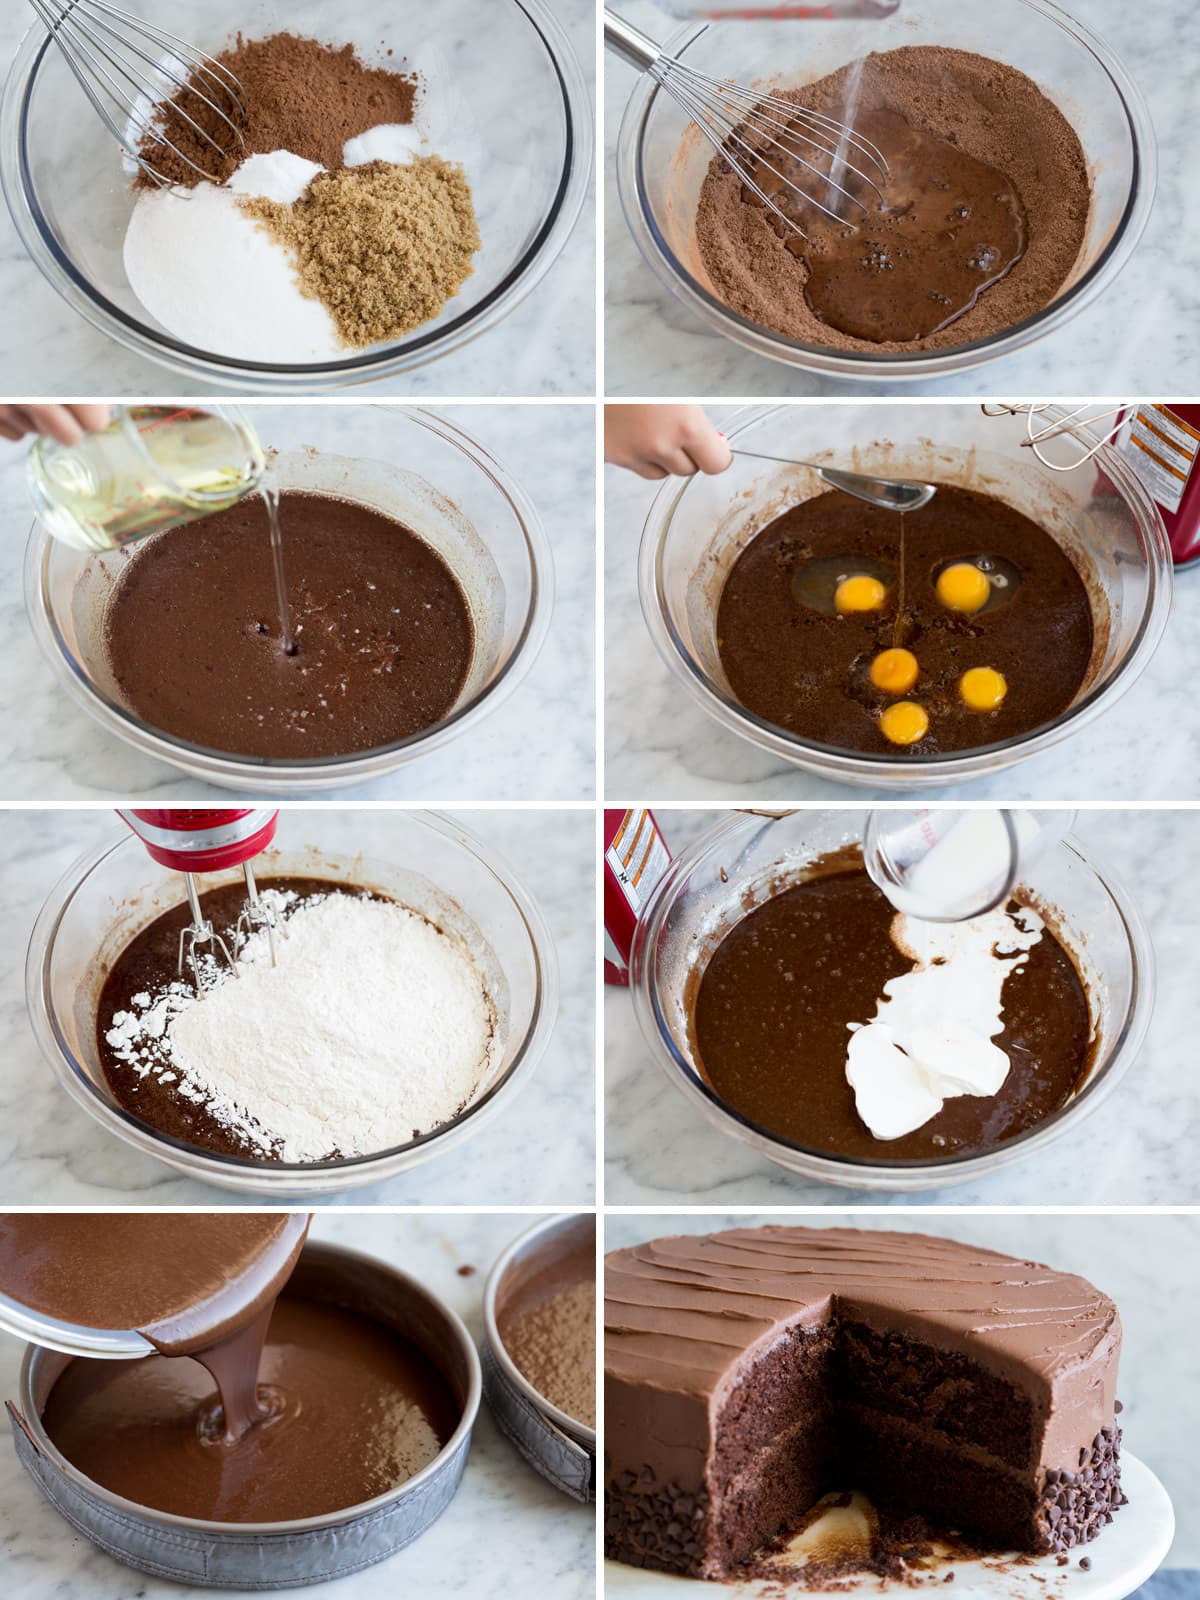 Steps to making chocolate cake